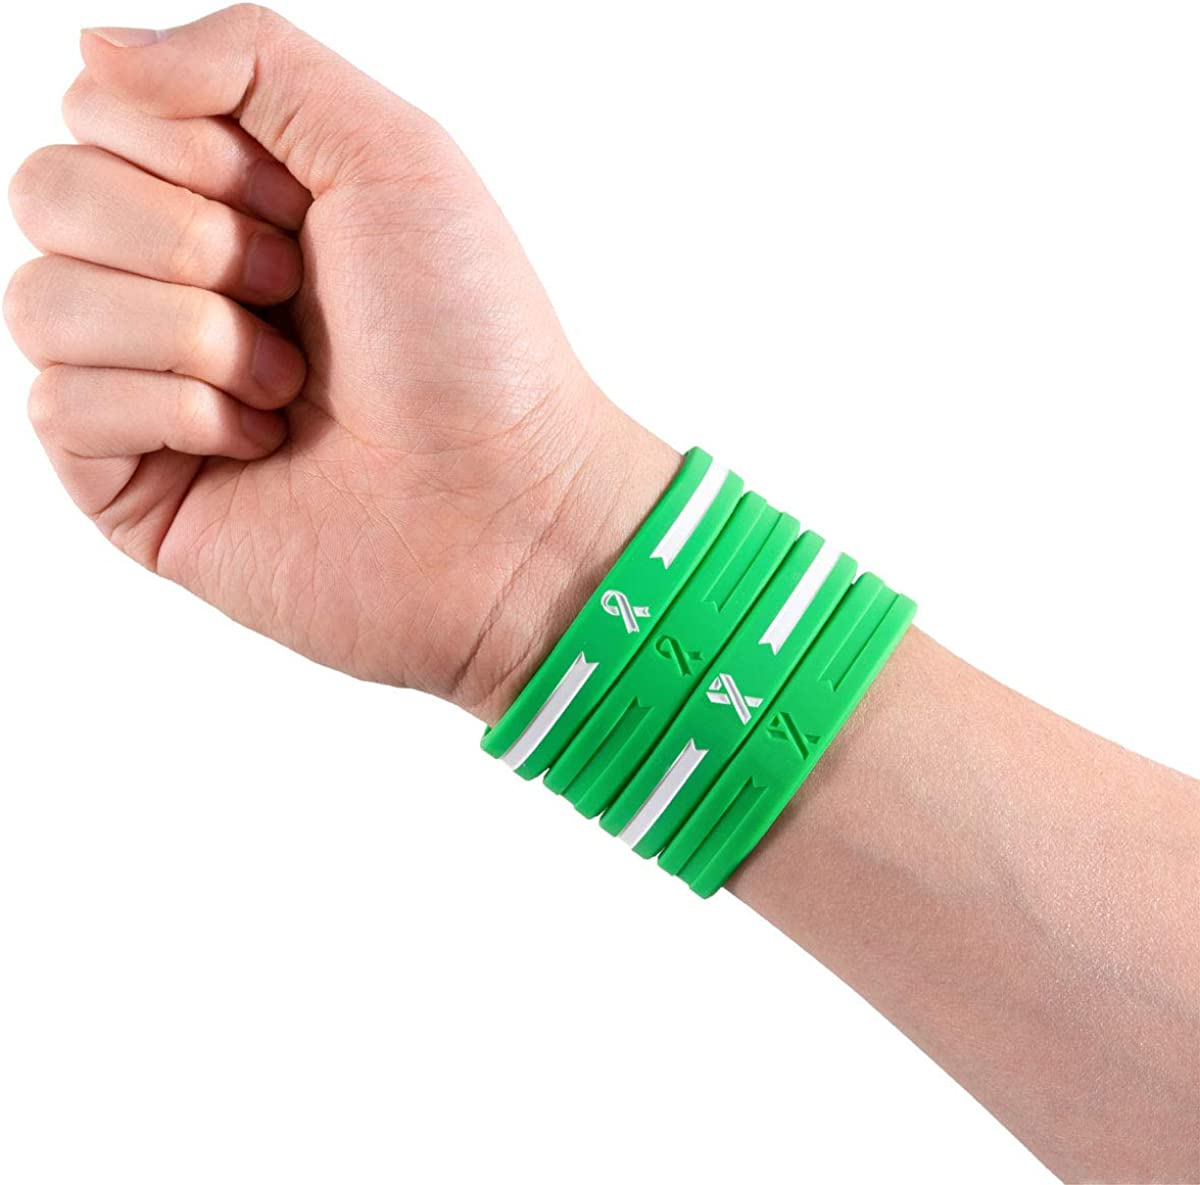 Sainstone 4-Pack Green Awareness Ribbon Silicone Bracelets Friends Cancer /& Cause Rubber Wristbands Gift for Men Women for Patients Mental Health Awareness Bracelet Family Survivors